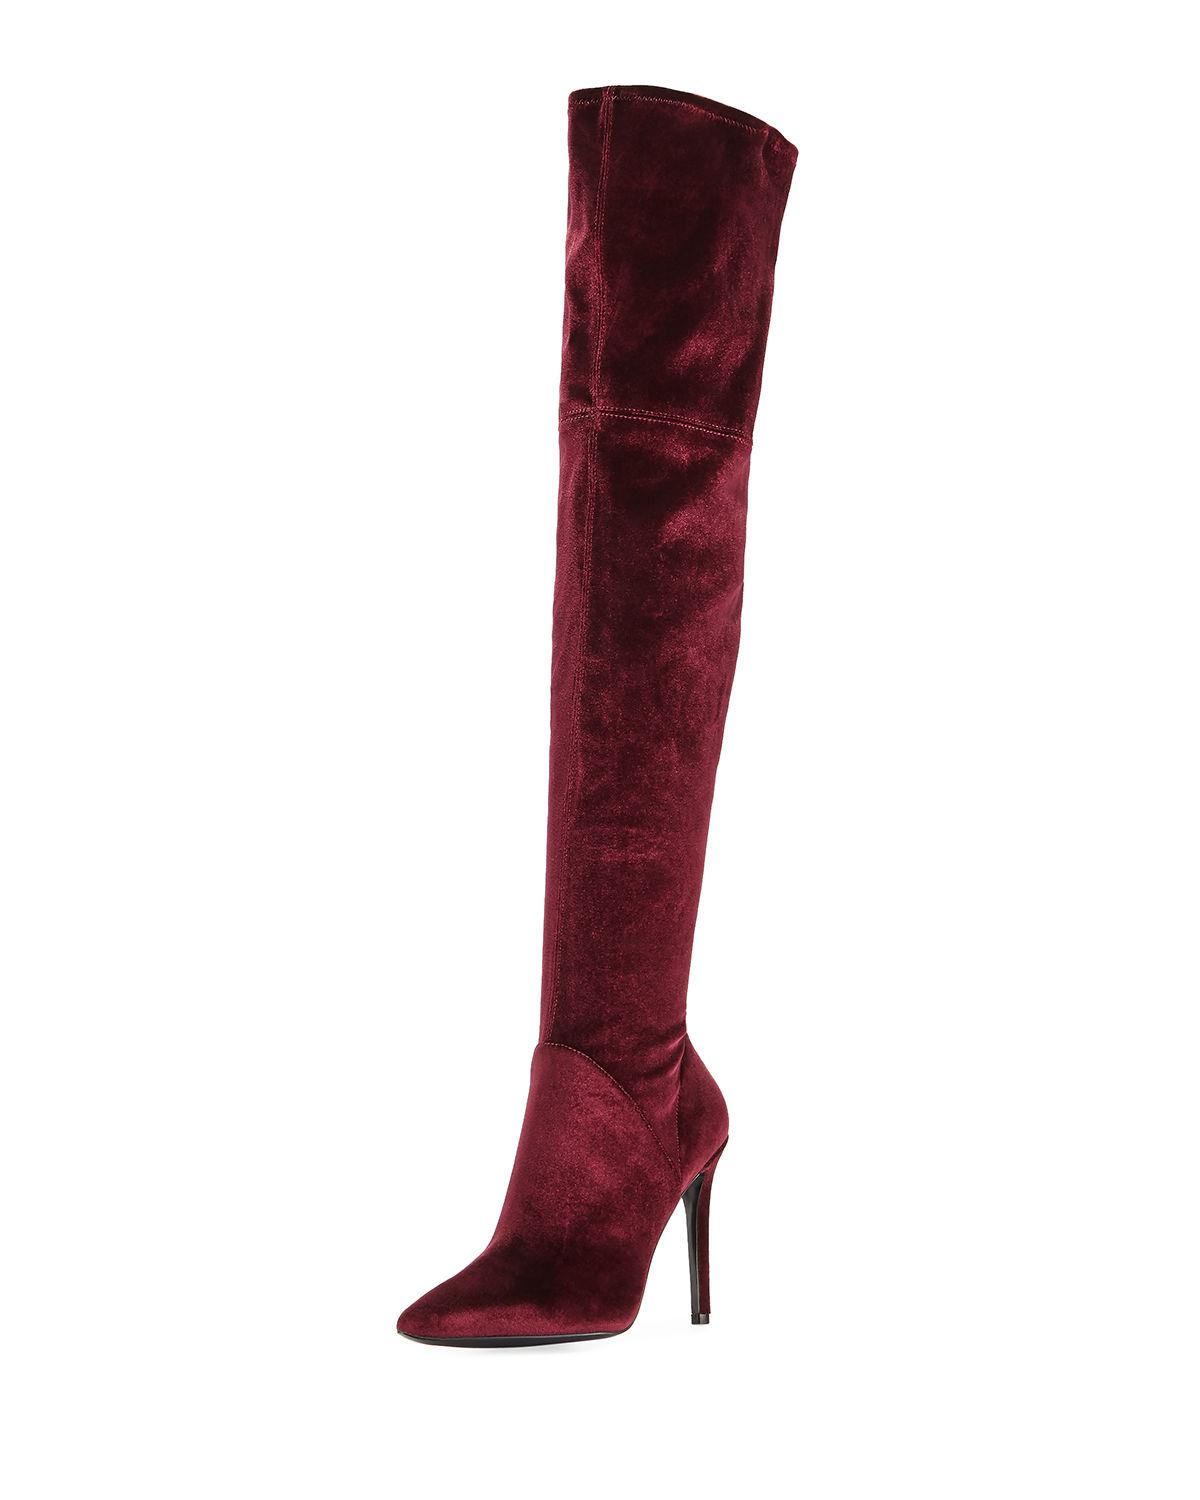 a6ece792303 Kendall + Kylie Ayla Velvet Over-the-knee Boot in Natural - Lyst